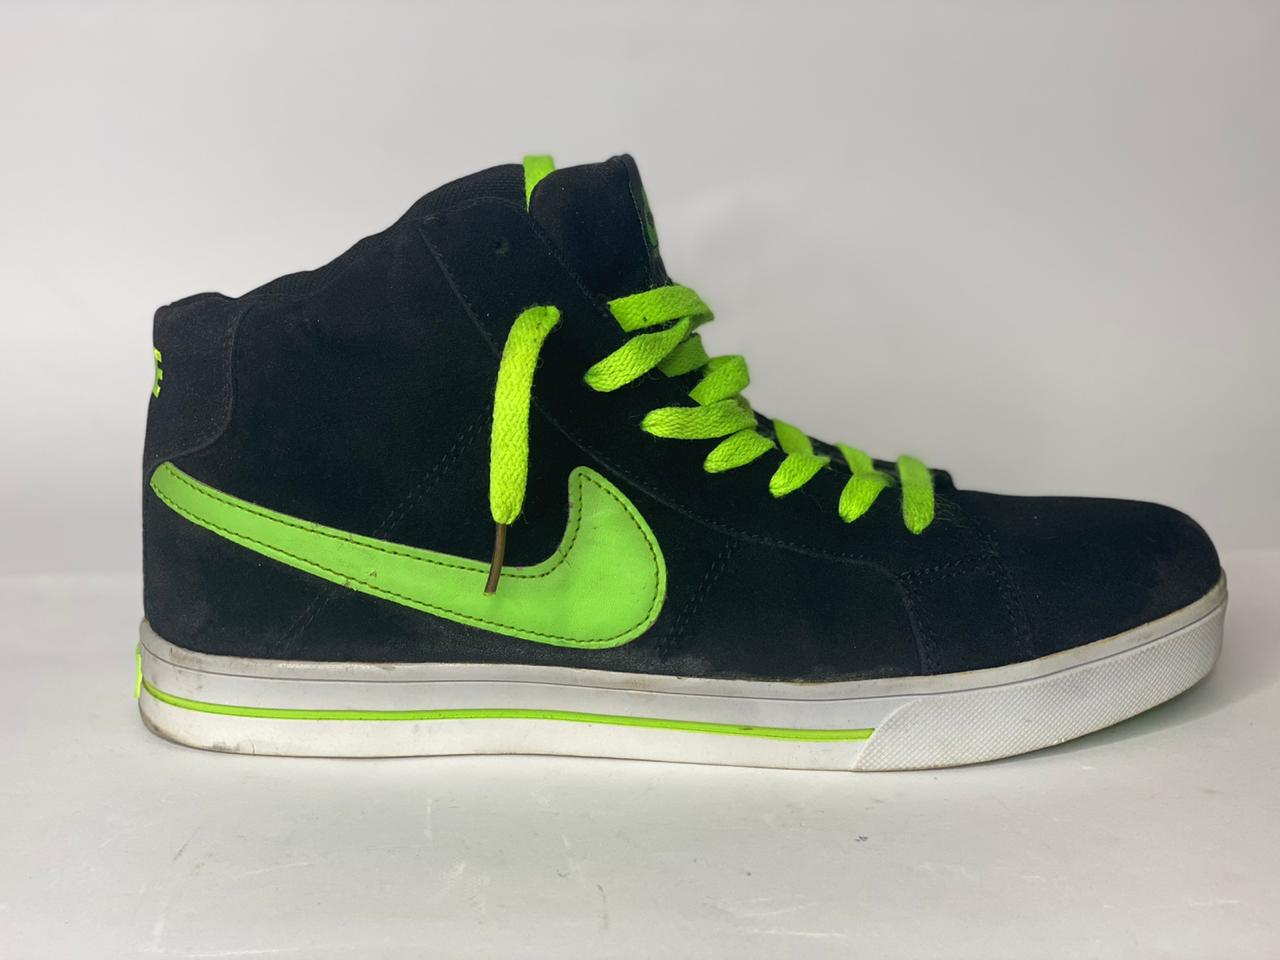 Nike Air Max Black With Neon Green. Size US#9, UK#7.5, PAK#44